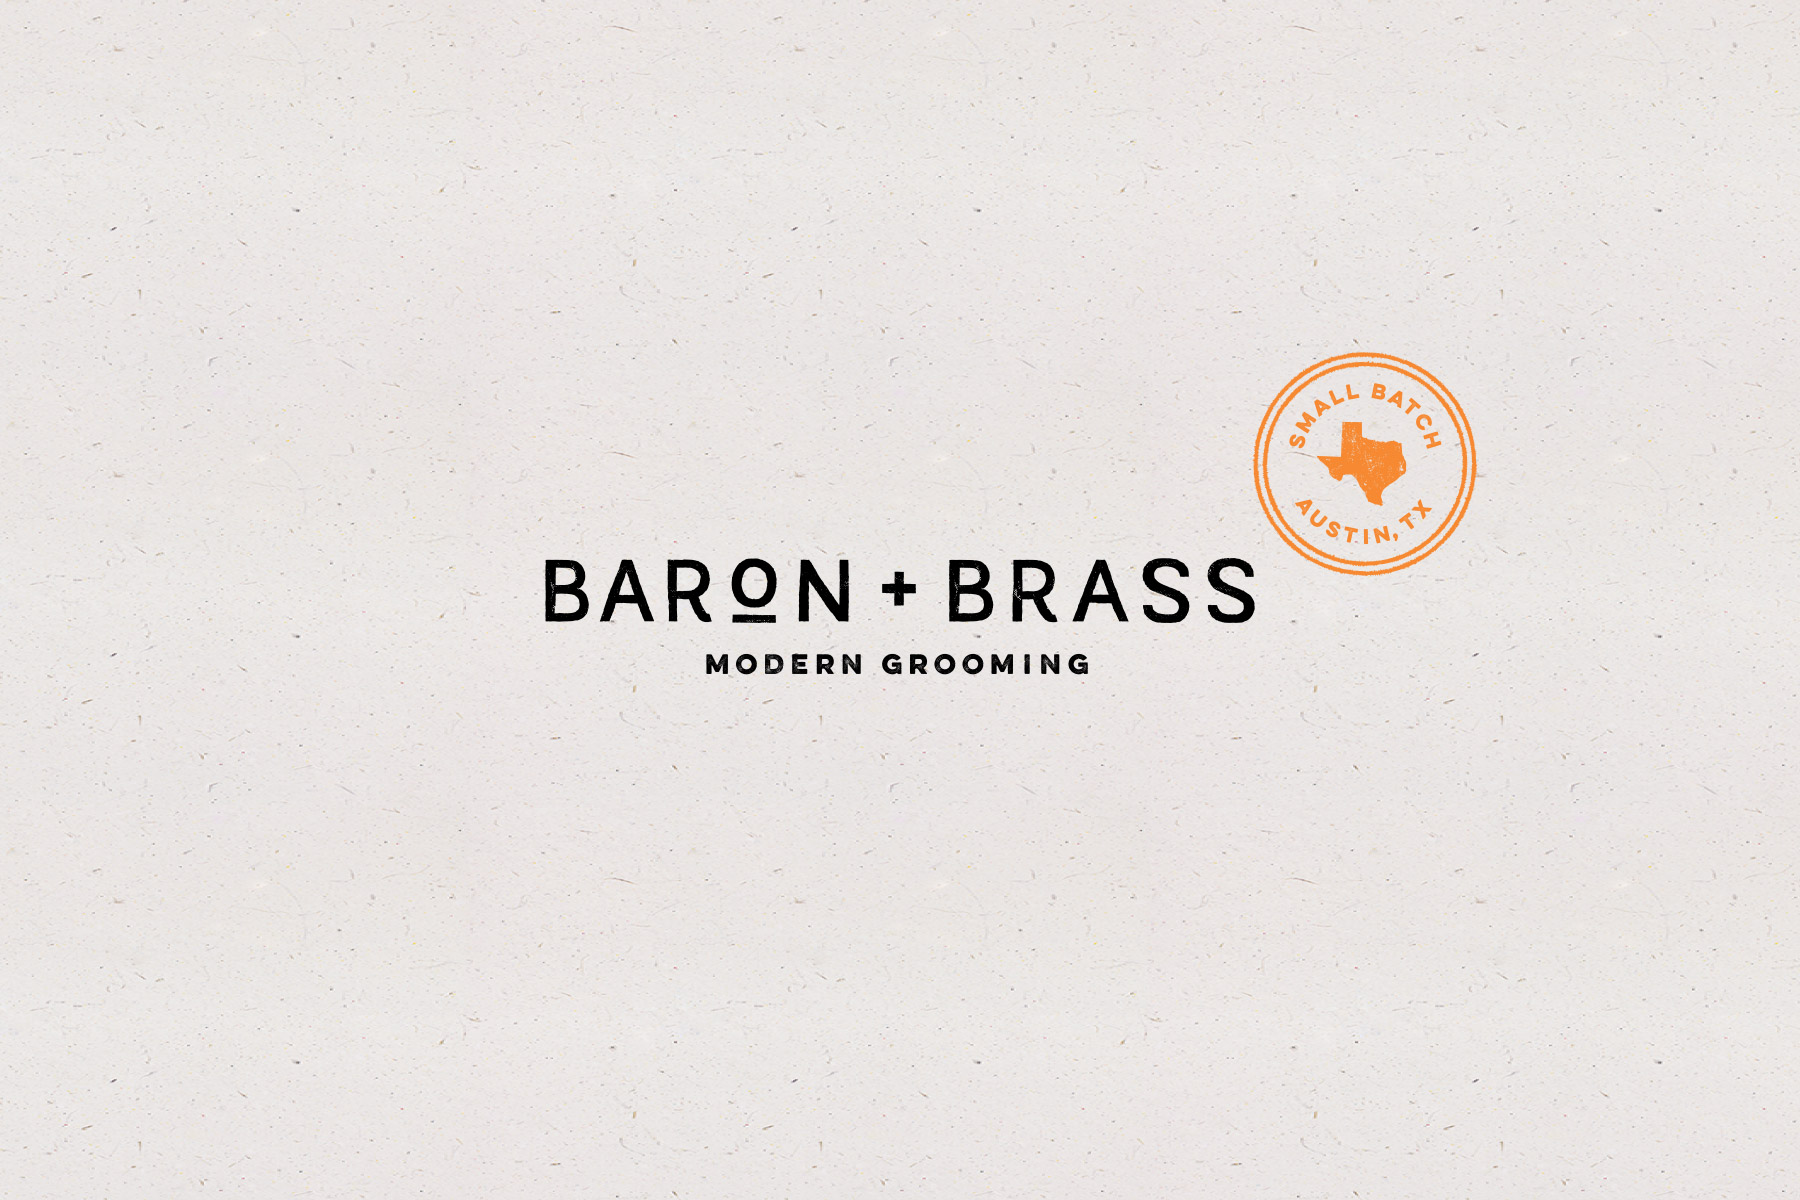 Baron + Brass, Artisanal Grooming Products for Men